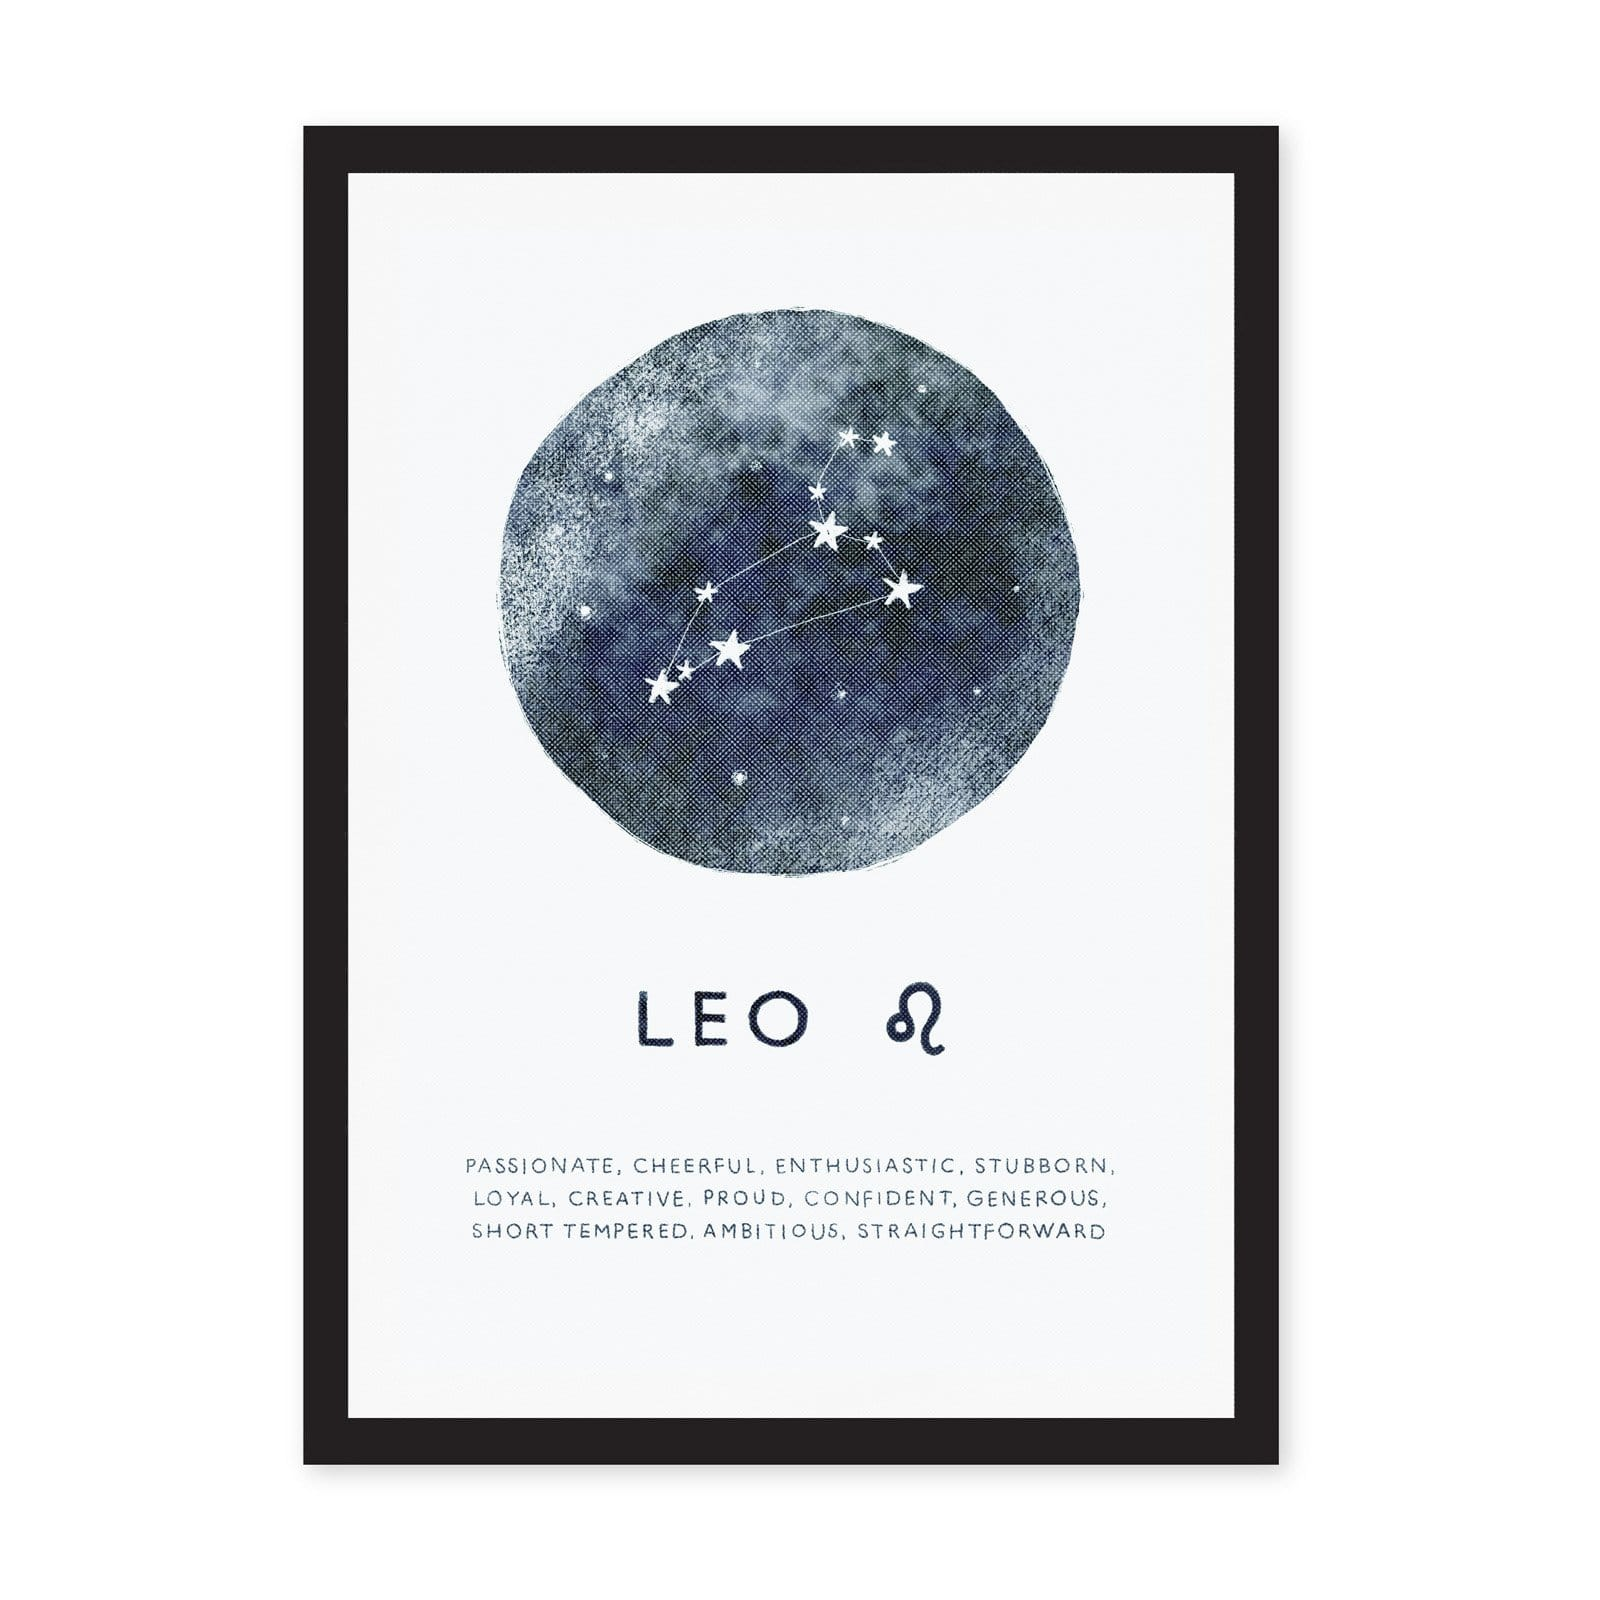 White A4 art print with blue circle and Leo star sign in centre, with words in black writing at bottom